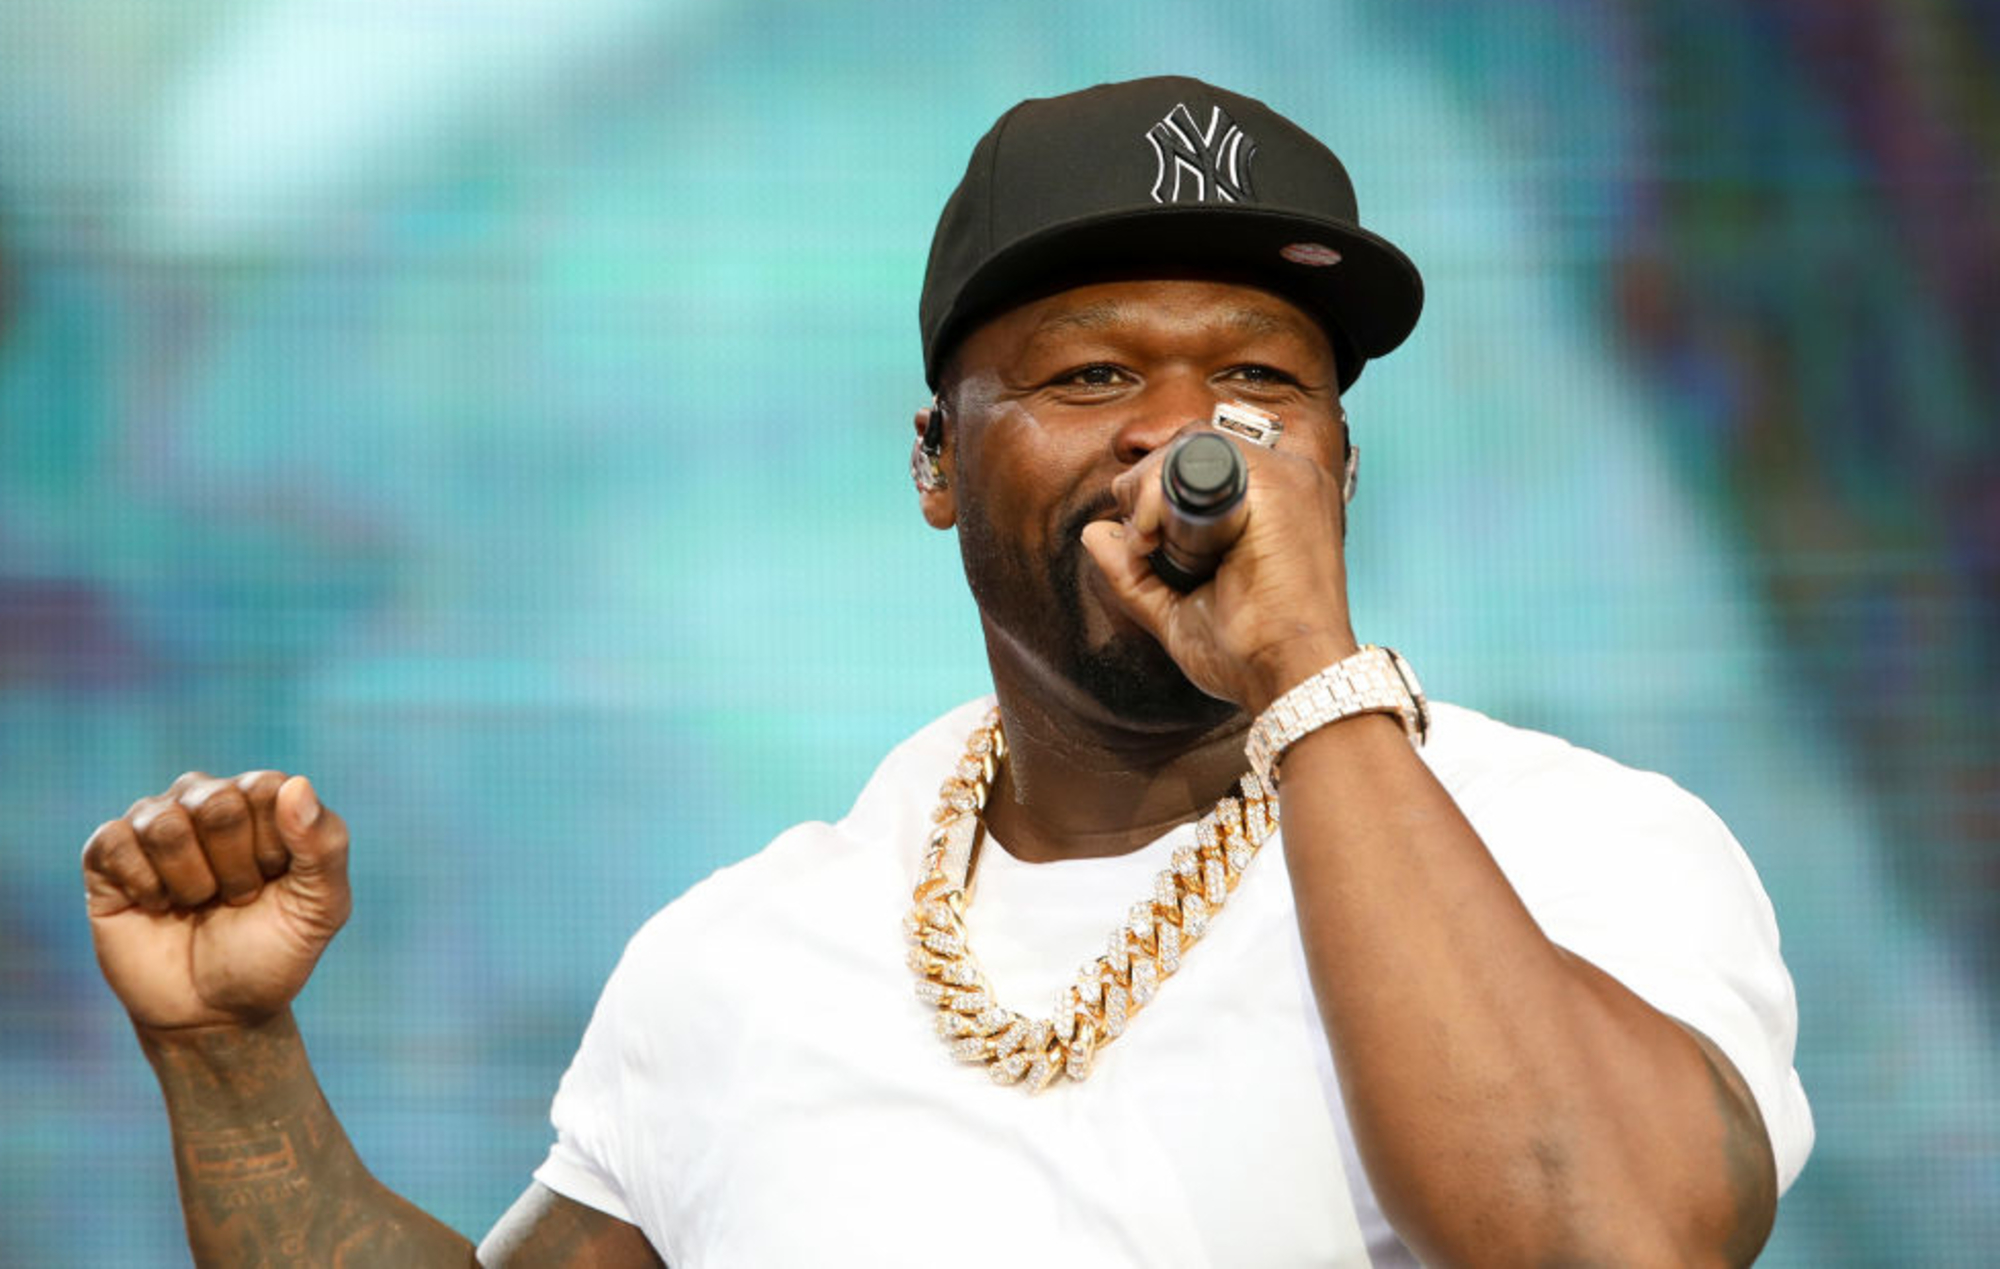 Listen to 50 Cent's new track 'Part Of The Game' featuring NLE Choppa and Rileyy Lanez